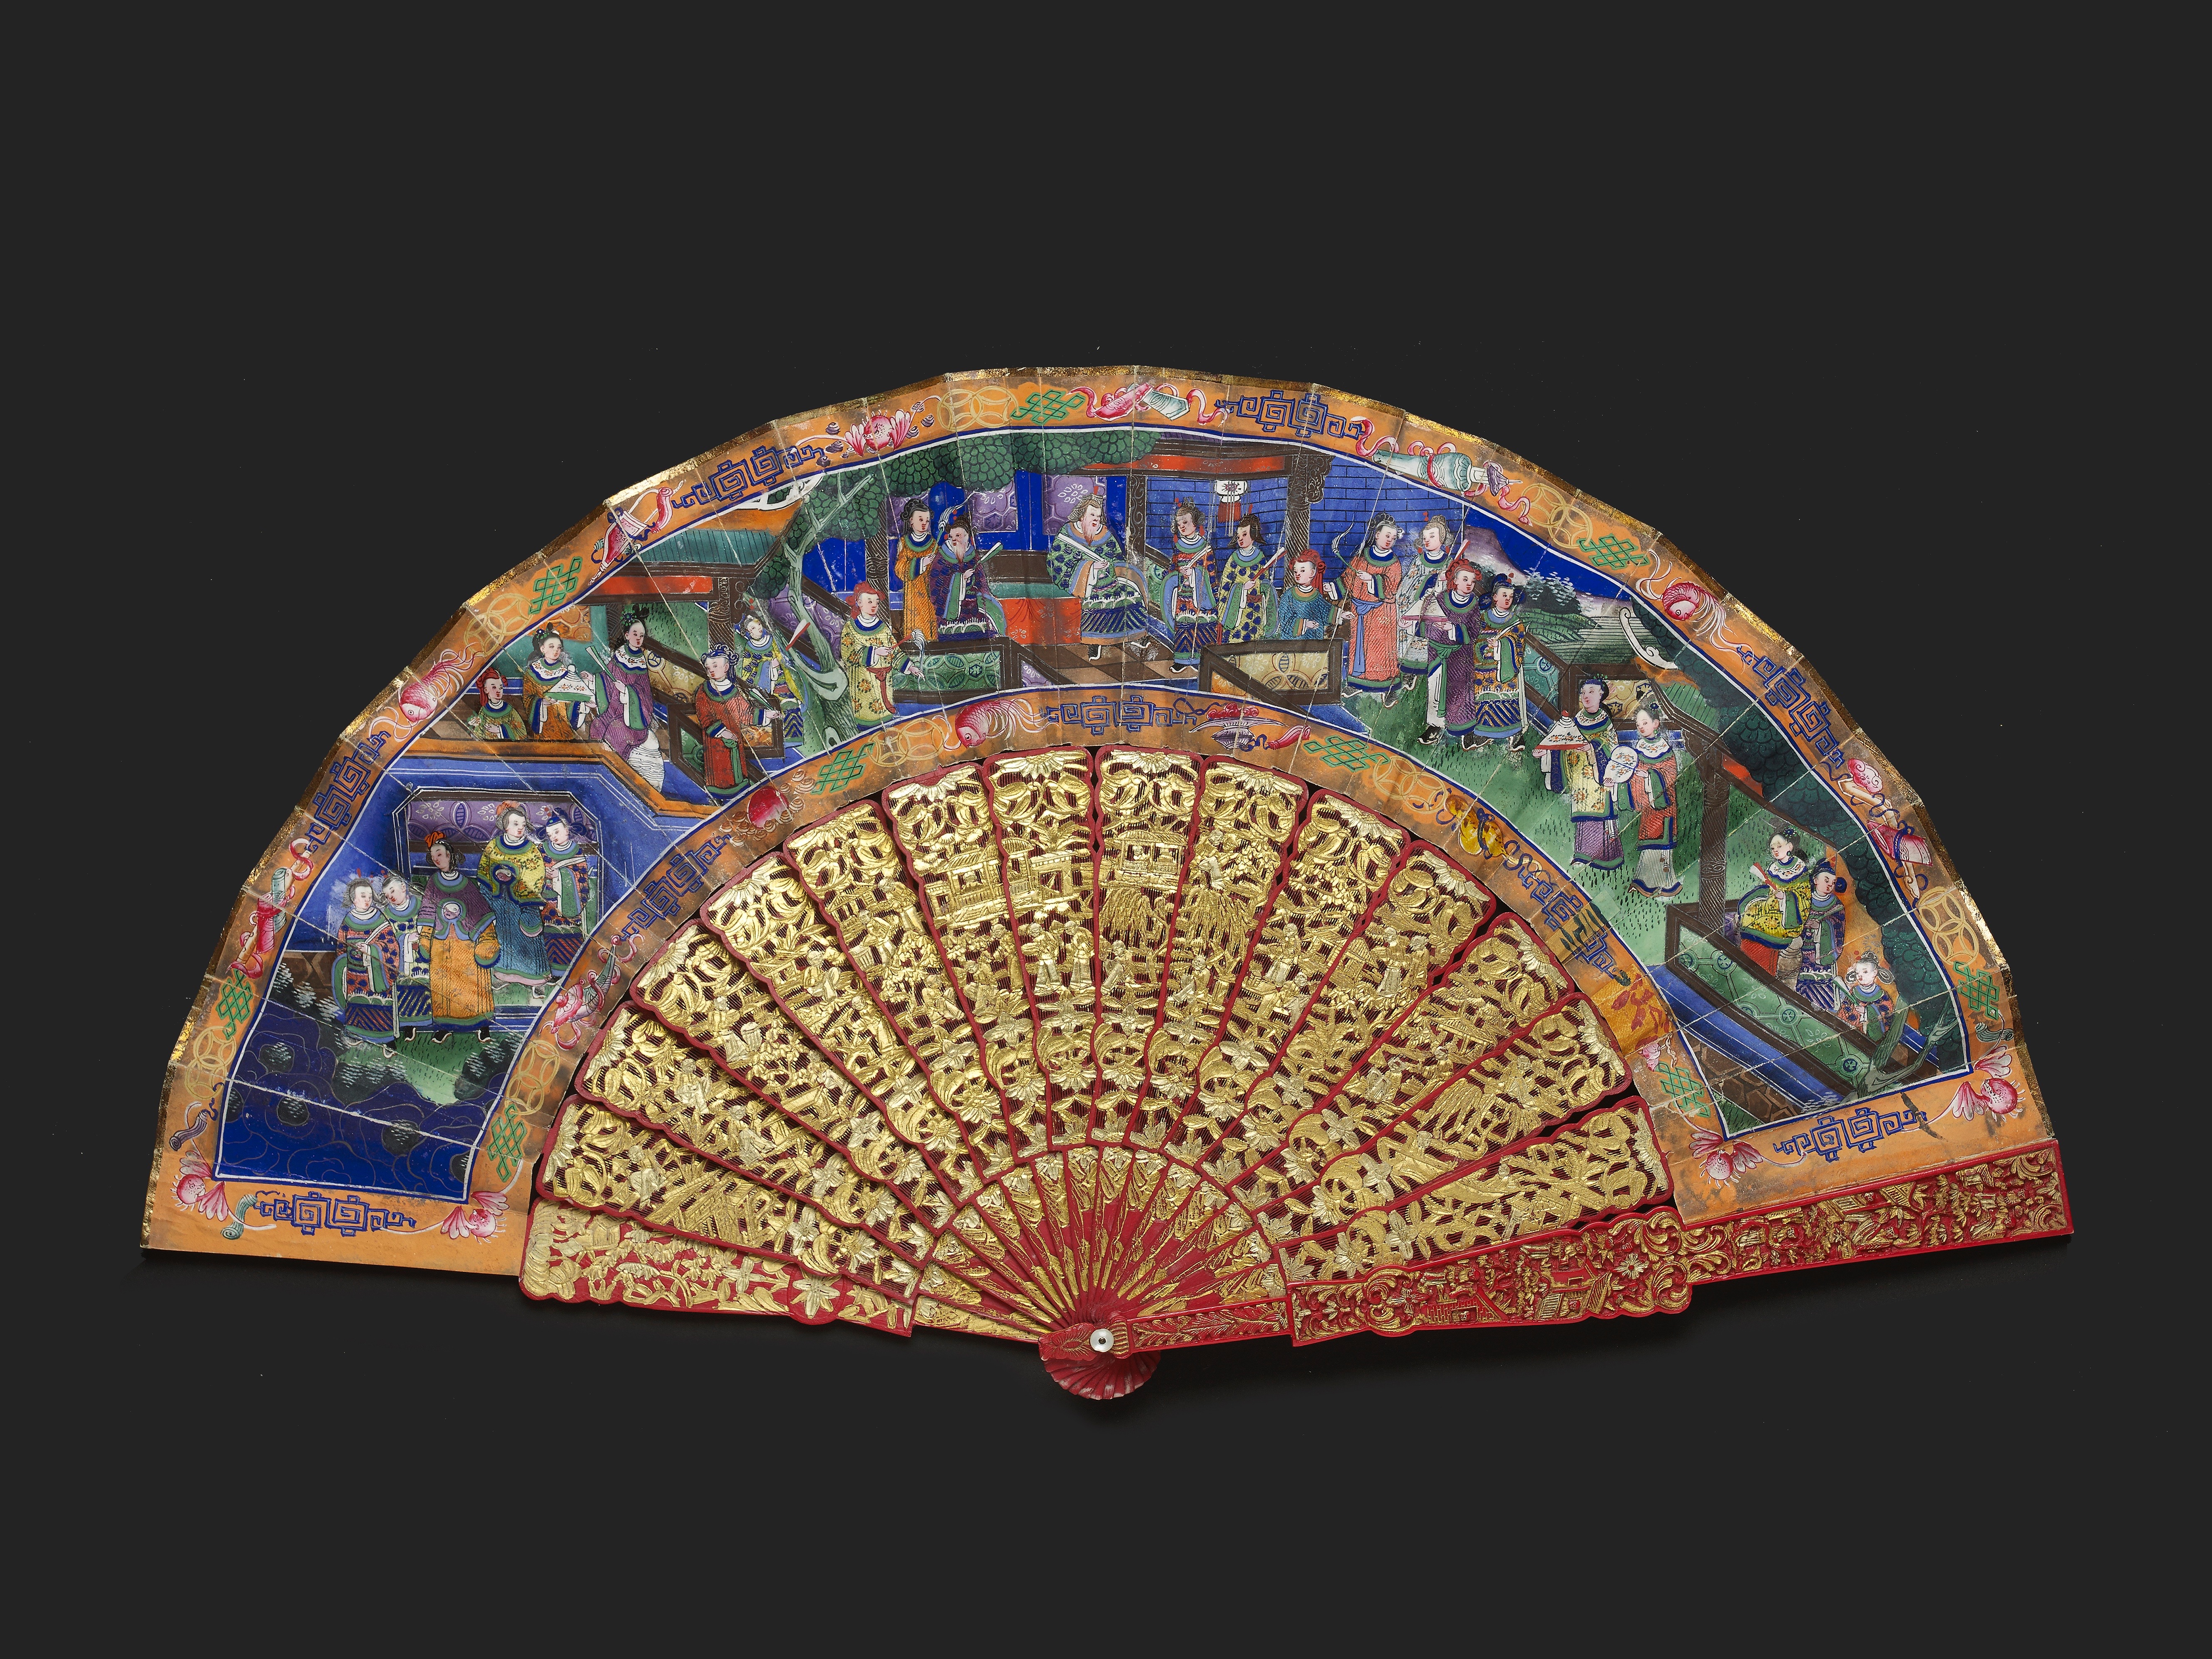 Lot 15 - A CHINESE EXPORT RED STAINED IVORY MANDARIN FAN, QING DYNASTY, DAOGUANG PERIOD, CIRCA 1840